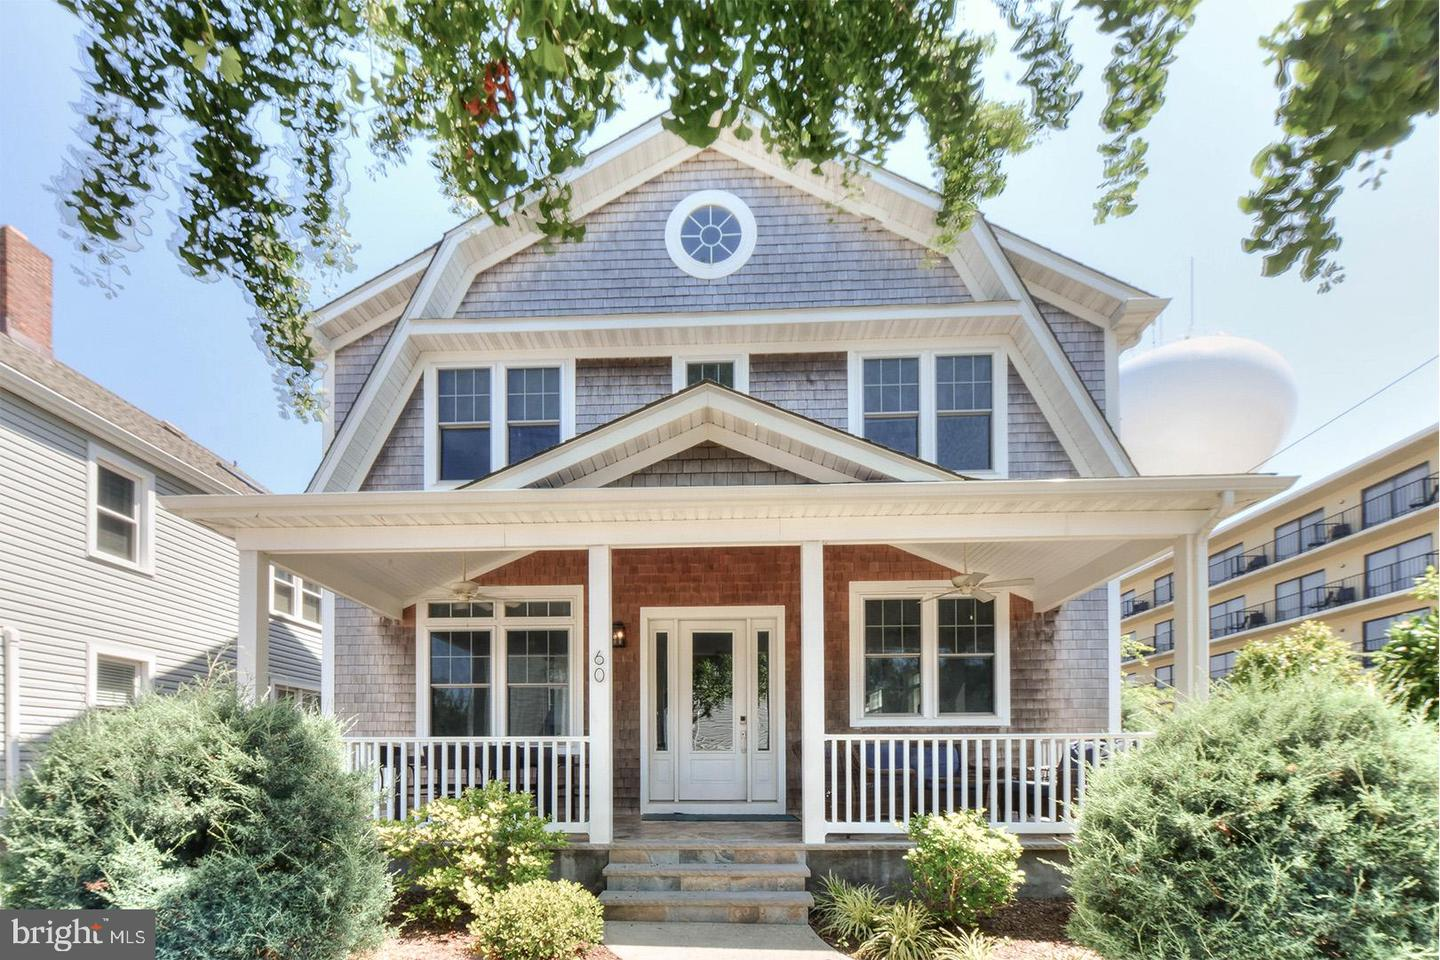 DESU165228-304218712544-2020-07-24-10-45-16 Browse our Lewes, Dewey, and Rehoboth Beach Real Estate Listings - Rehoboth Beach Real Estate - Bryce Lingo and Shaun Tull REALTORS, Rehoboth Beach, Delaware